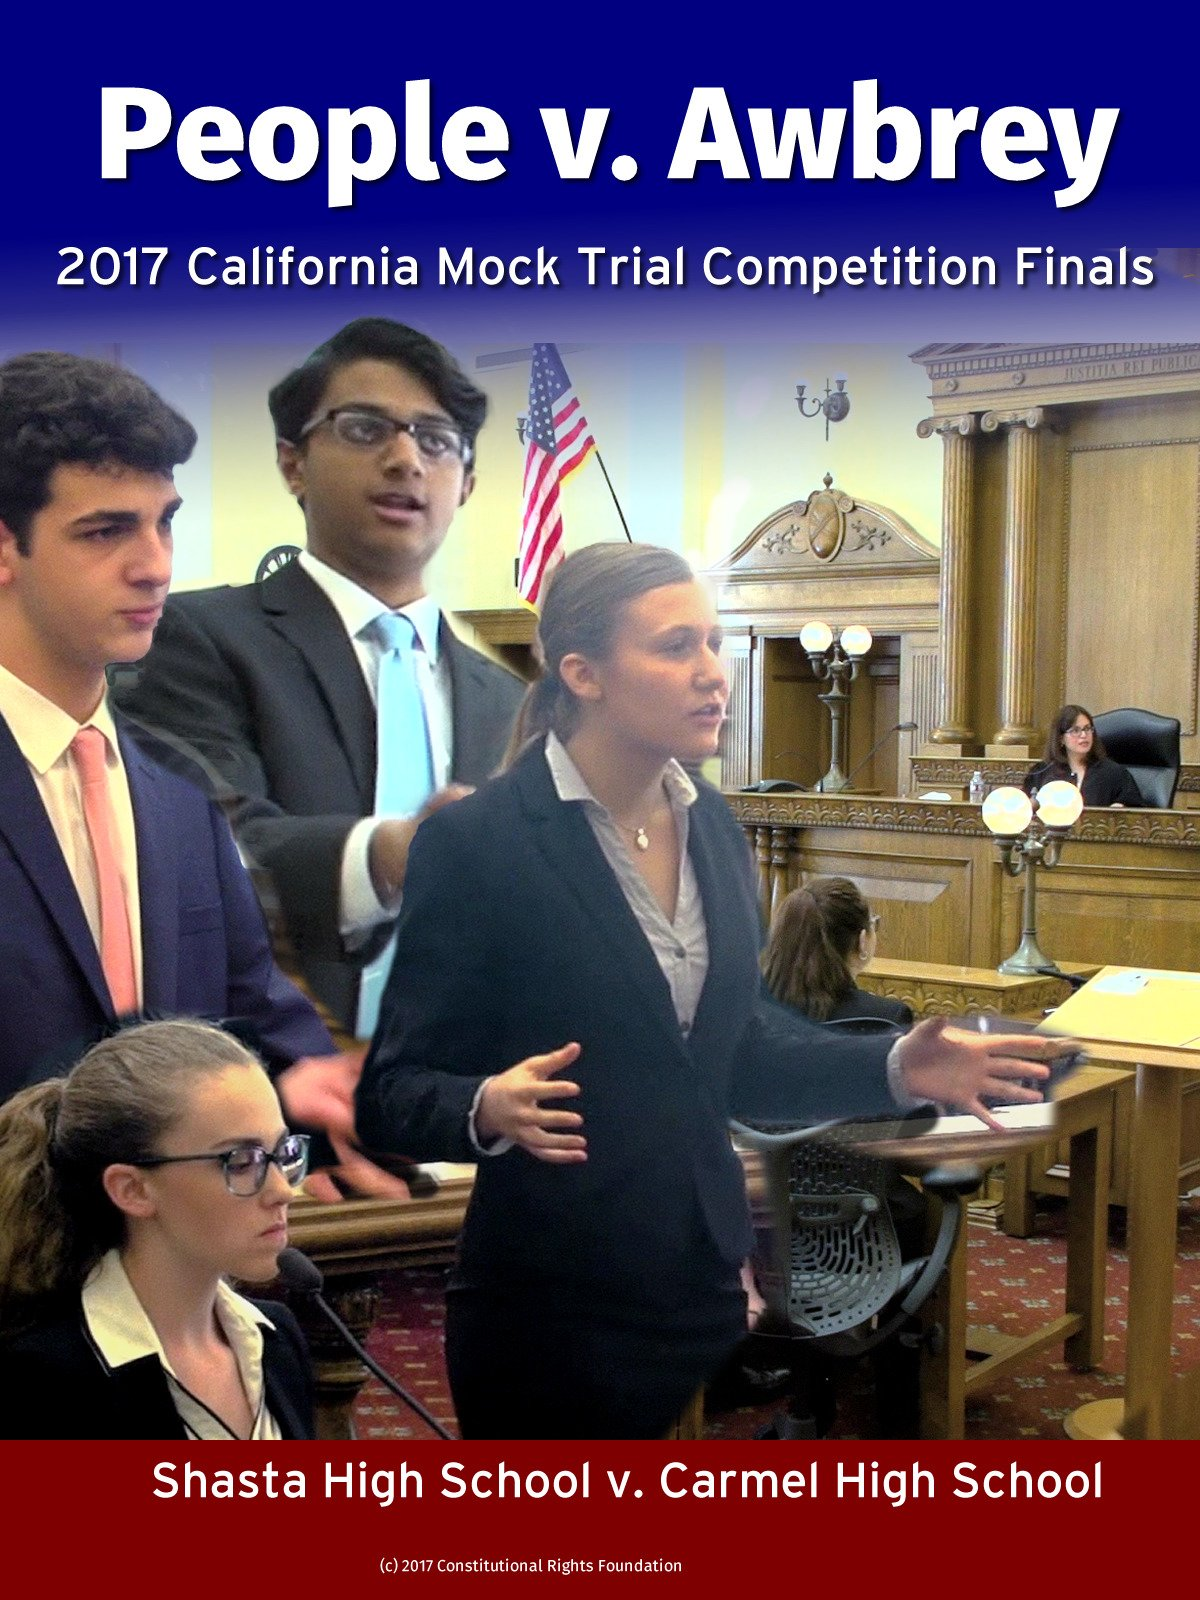 People v. Awbrey: 2017 California Mock Trial Competition Finals